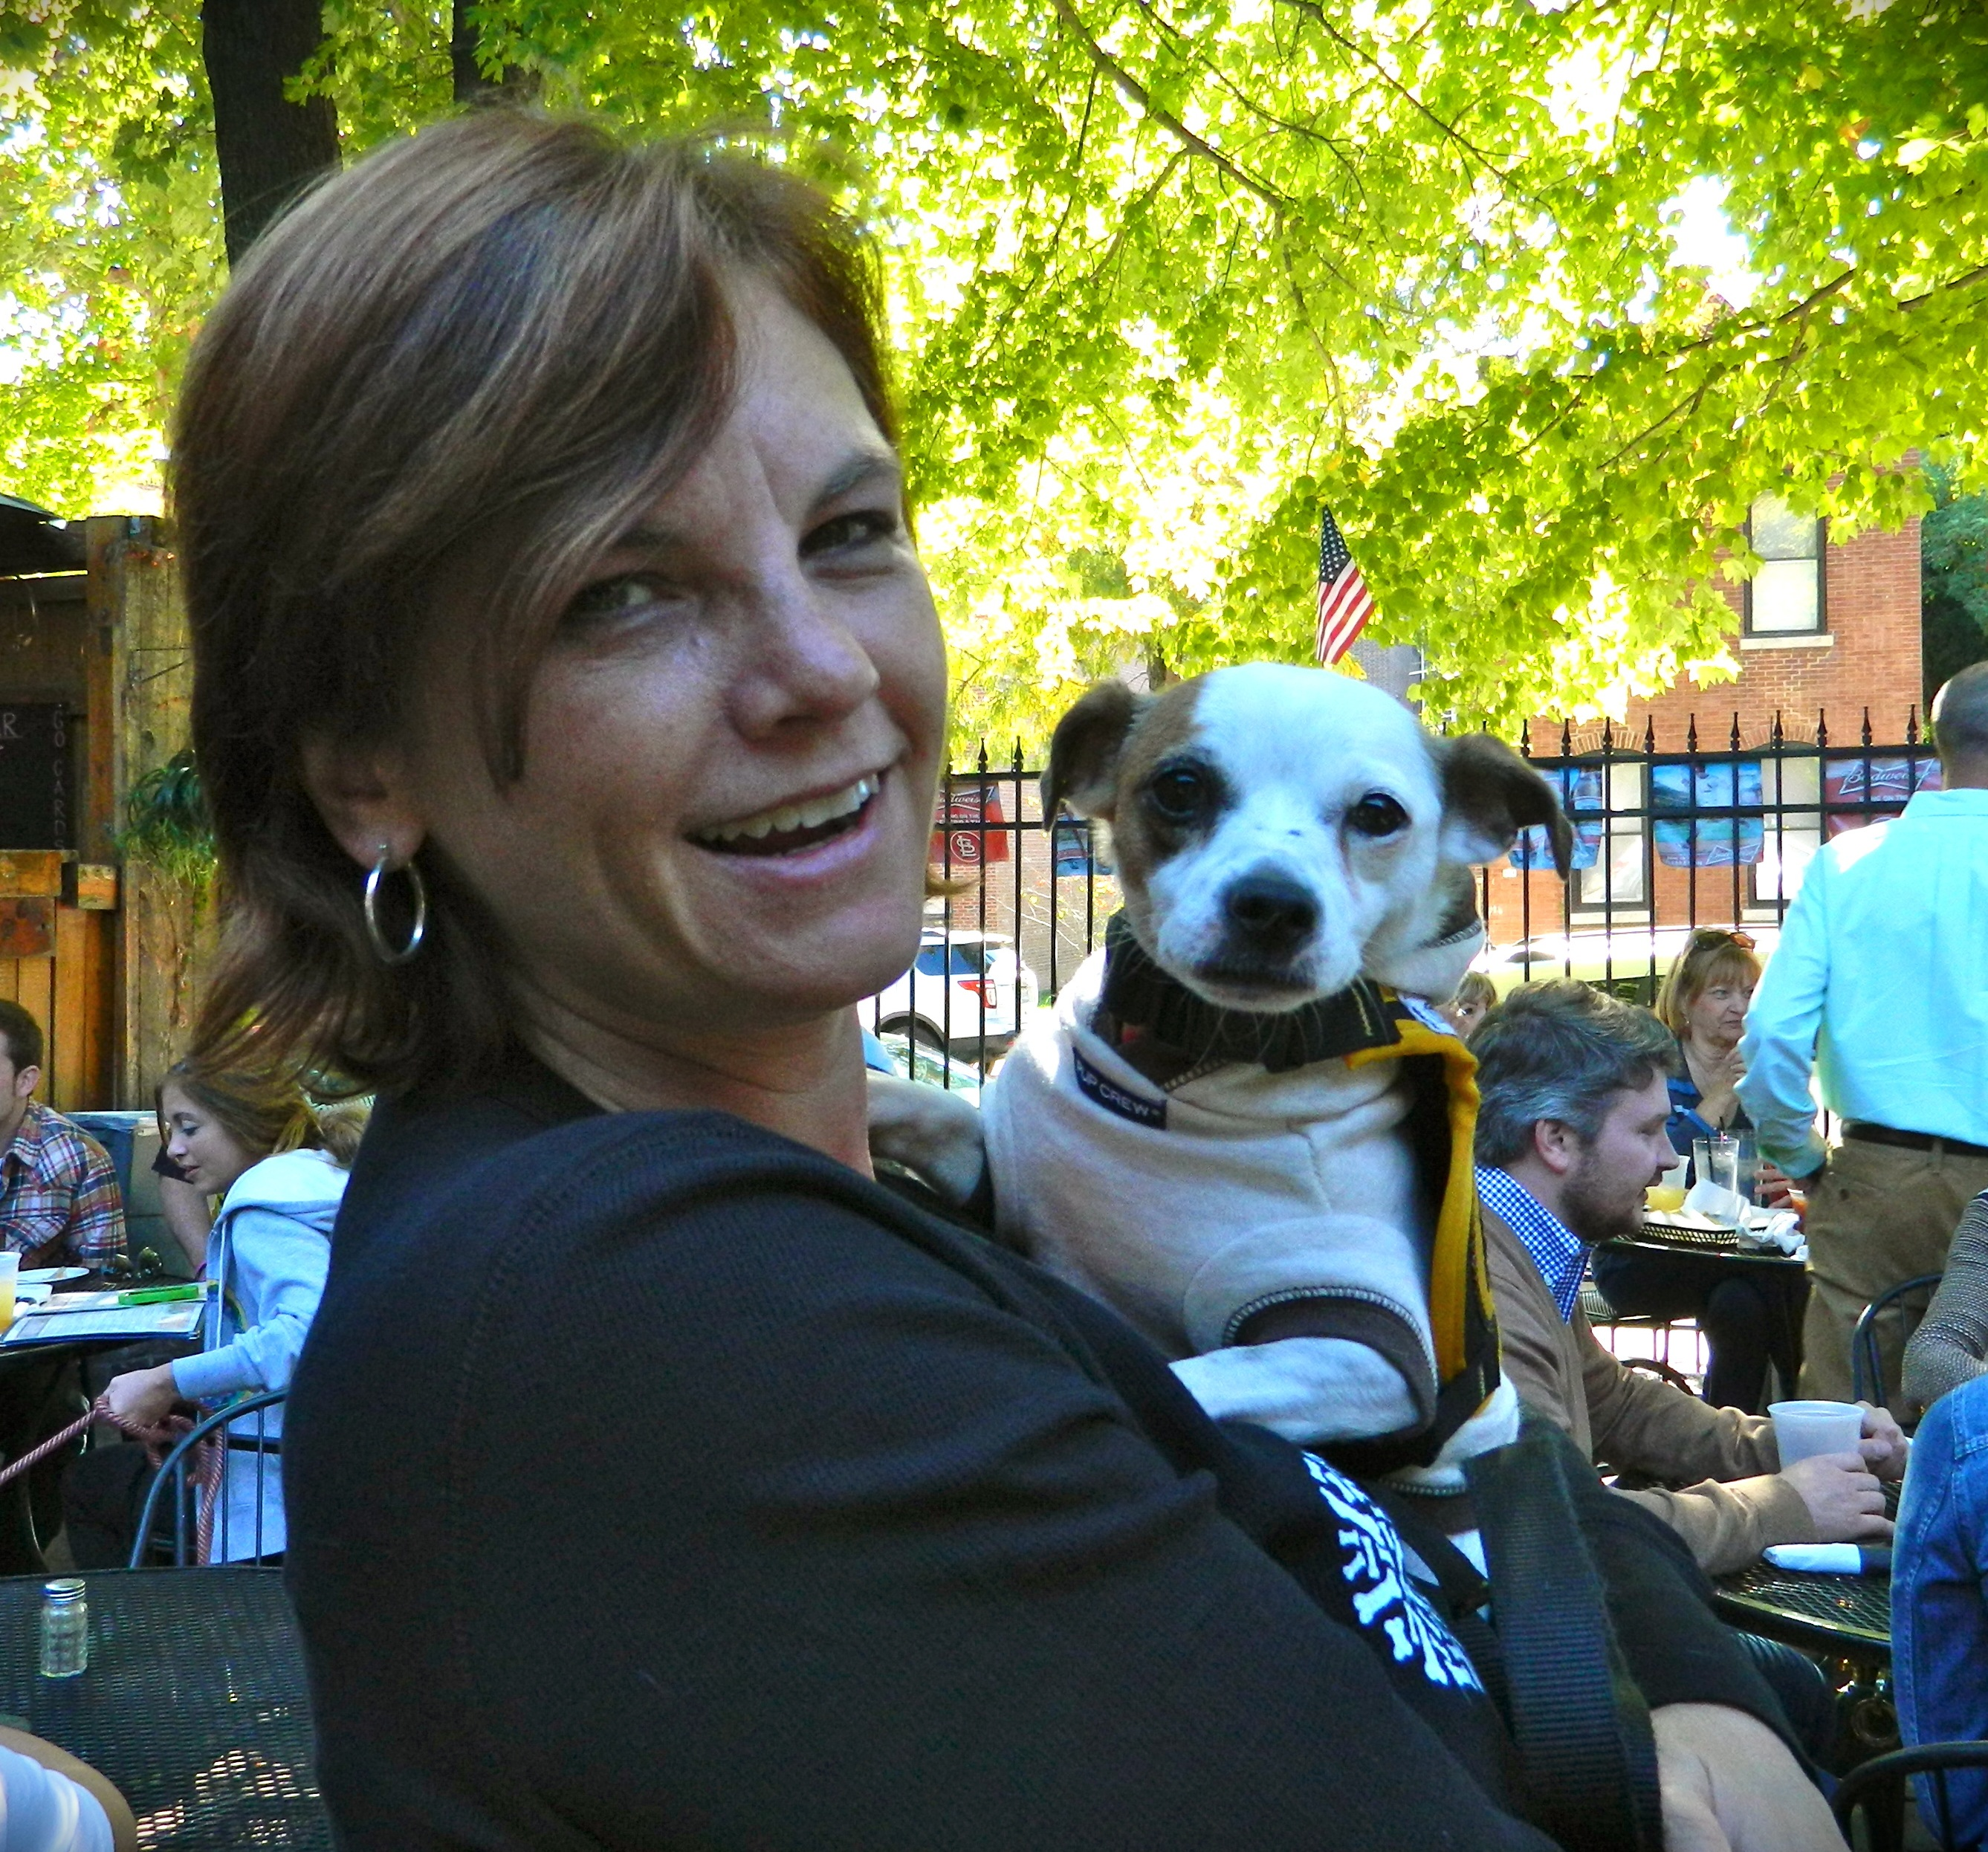 Wordless Wednesday – Foster Dogs Have Changed My Life